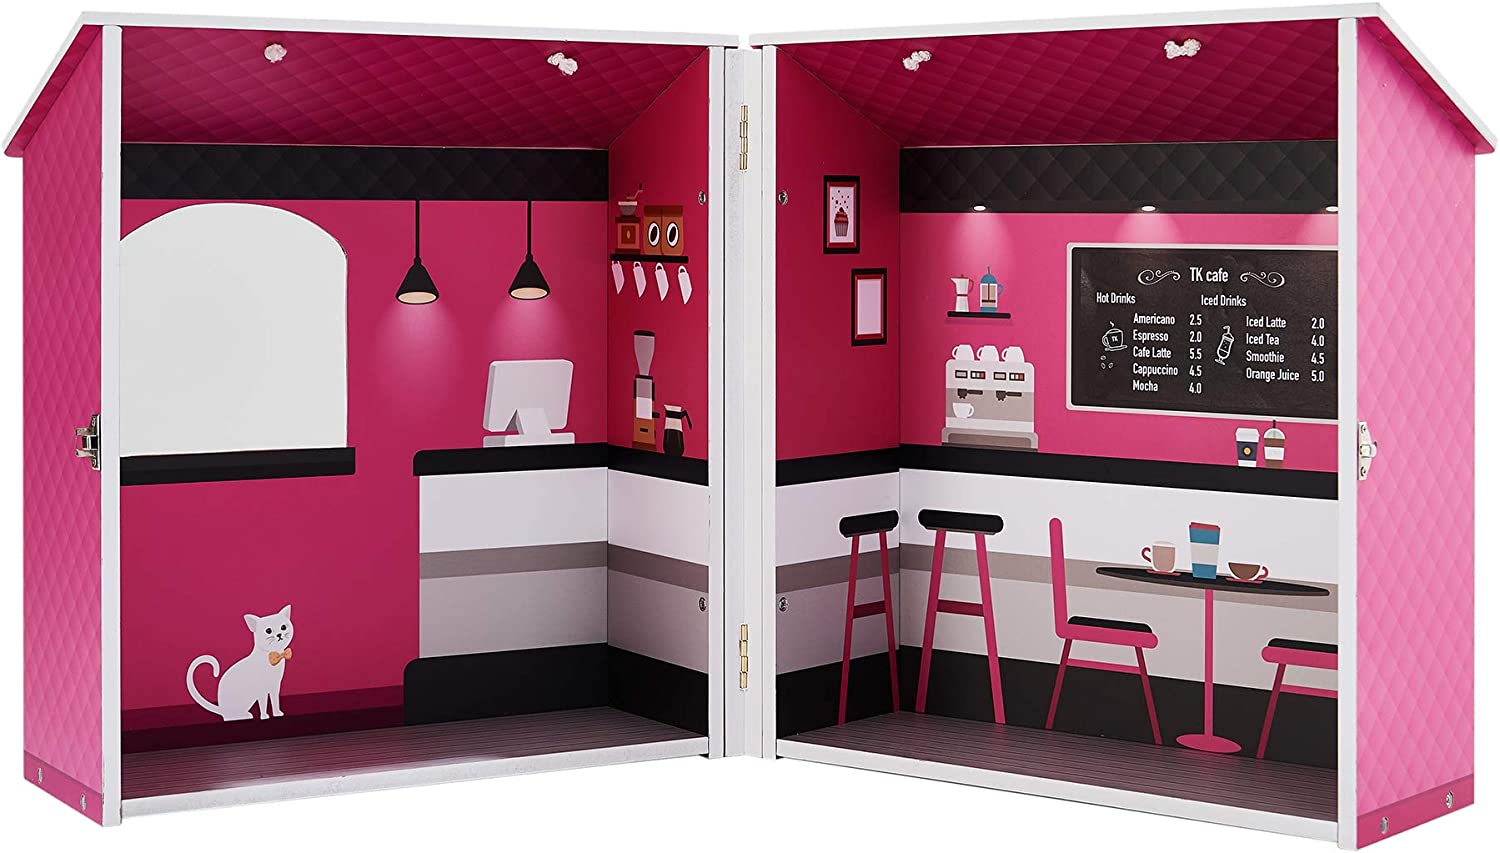 """Teamson Kids - Dreamland City Café Wooden Pretend Play Toys Dollhouse with Furniture for 12"""" Dolls - Pink"""